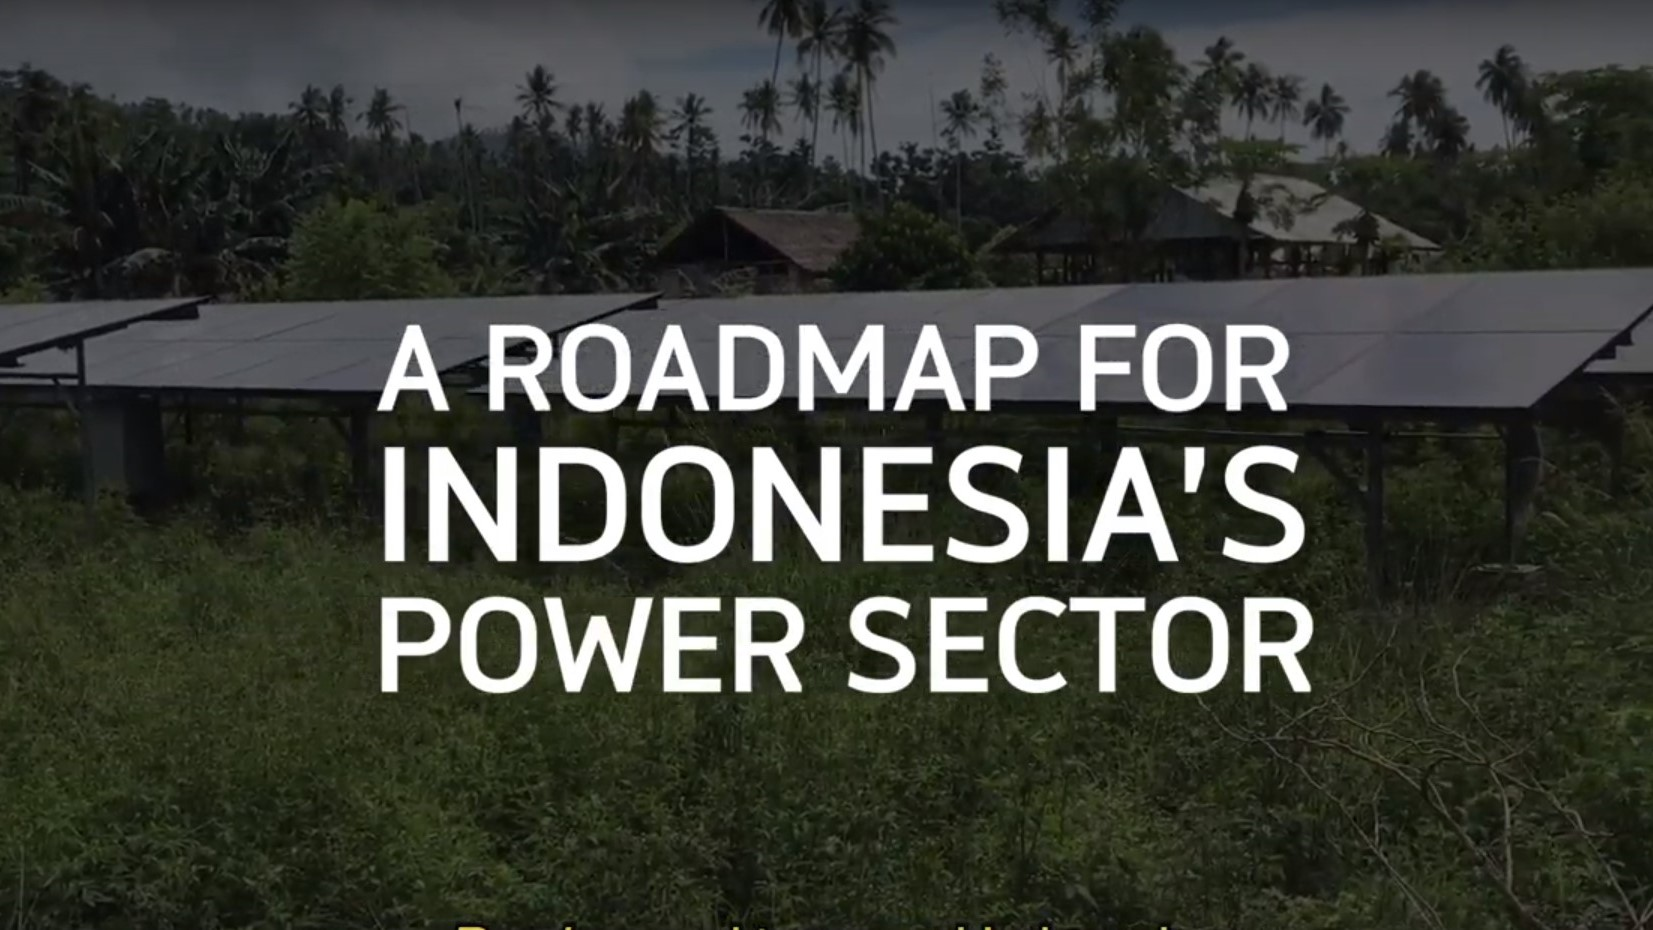 Dr Ariel Liebman from Monash University on 'A Roadmap for Indonesia's Power Sector'